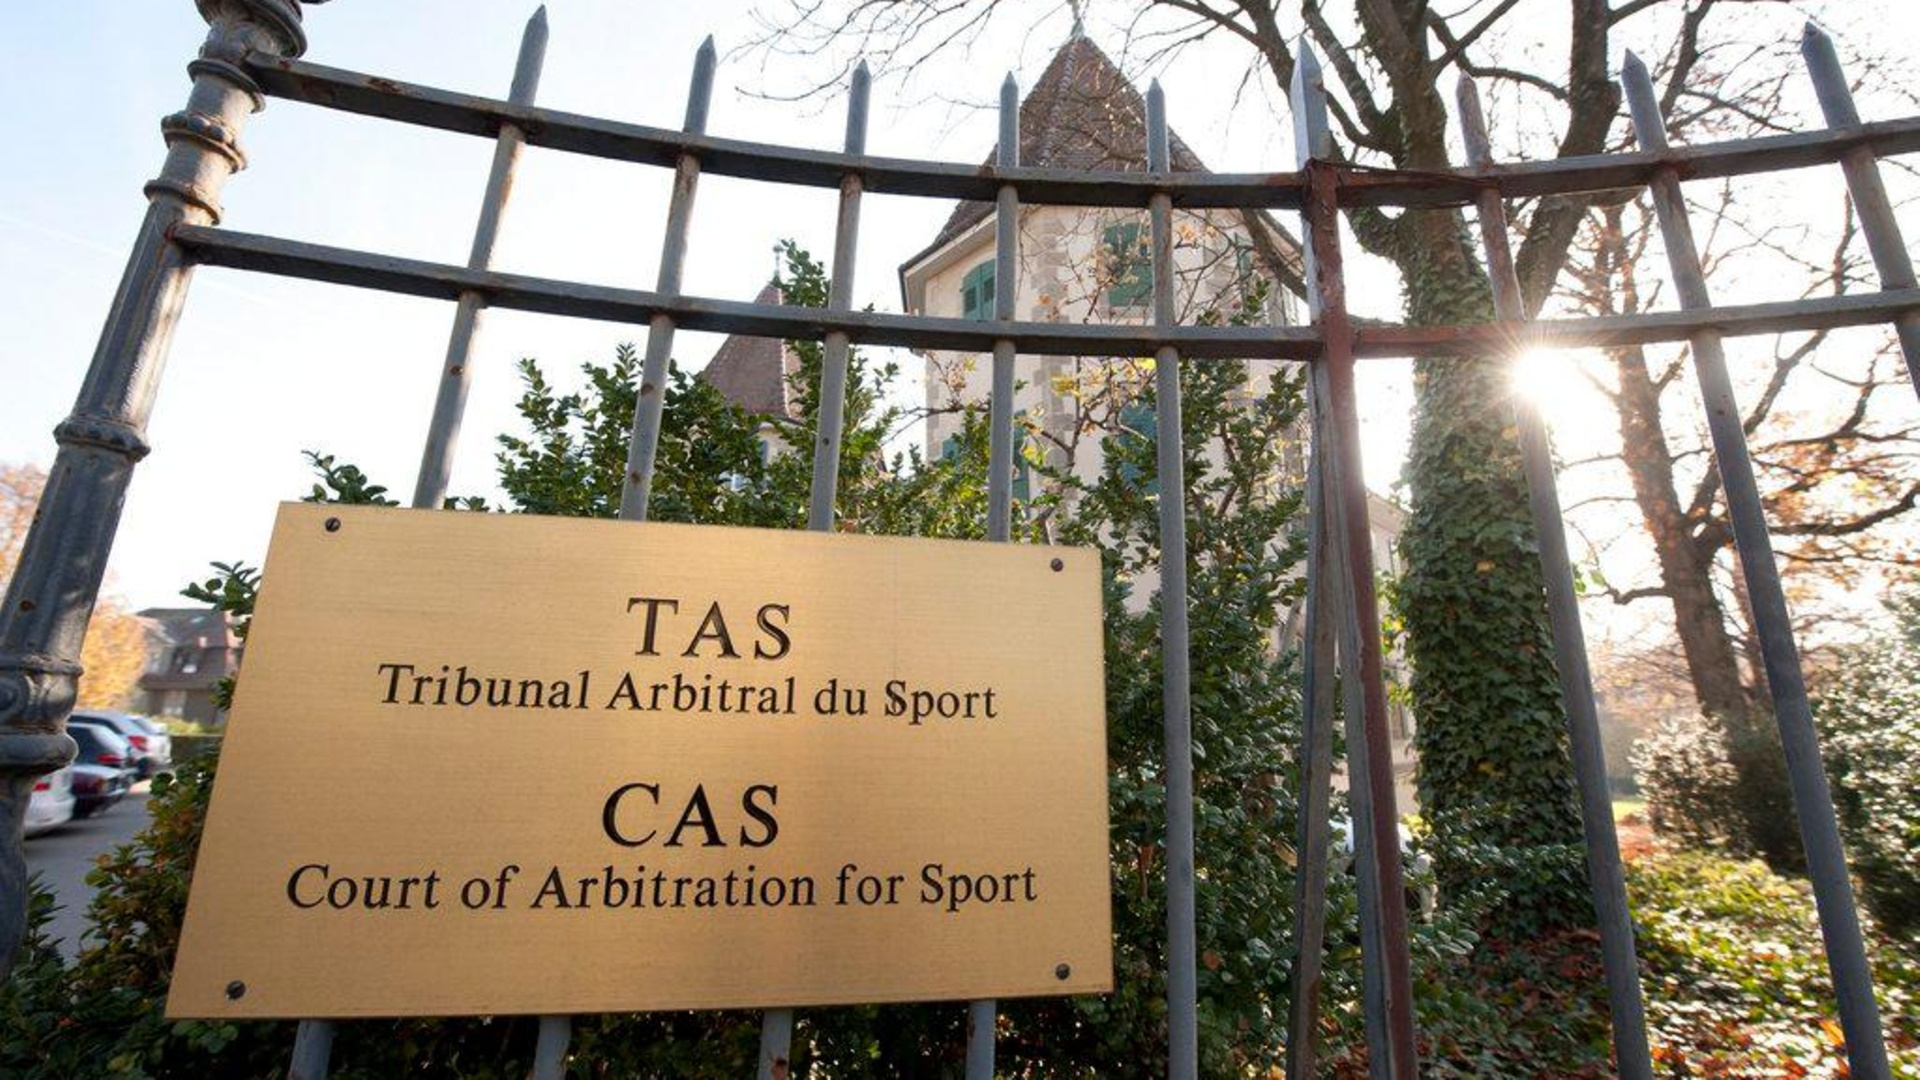 The Court of Arbitration for Sport (CAS) in Lausanne, Switzerland, Monday, November 21, 2011. The International Cycling Union (UCI) and World Anti-Doping Agency (WADA) filed appeals at the Court of Arbitration for Sport (CAS) against the decision of the Spanish Cycling Federation (RFEC) exonerating Alberto Contador 2010 Tour de France victory from any sanction following an adverse analytical finding for the substance clenbuterol. (KEYSTONE/Dominic Favre)